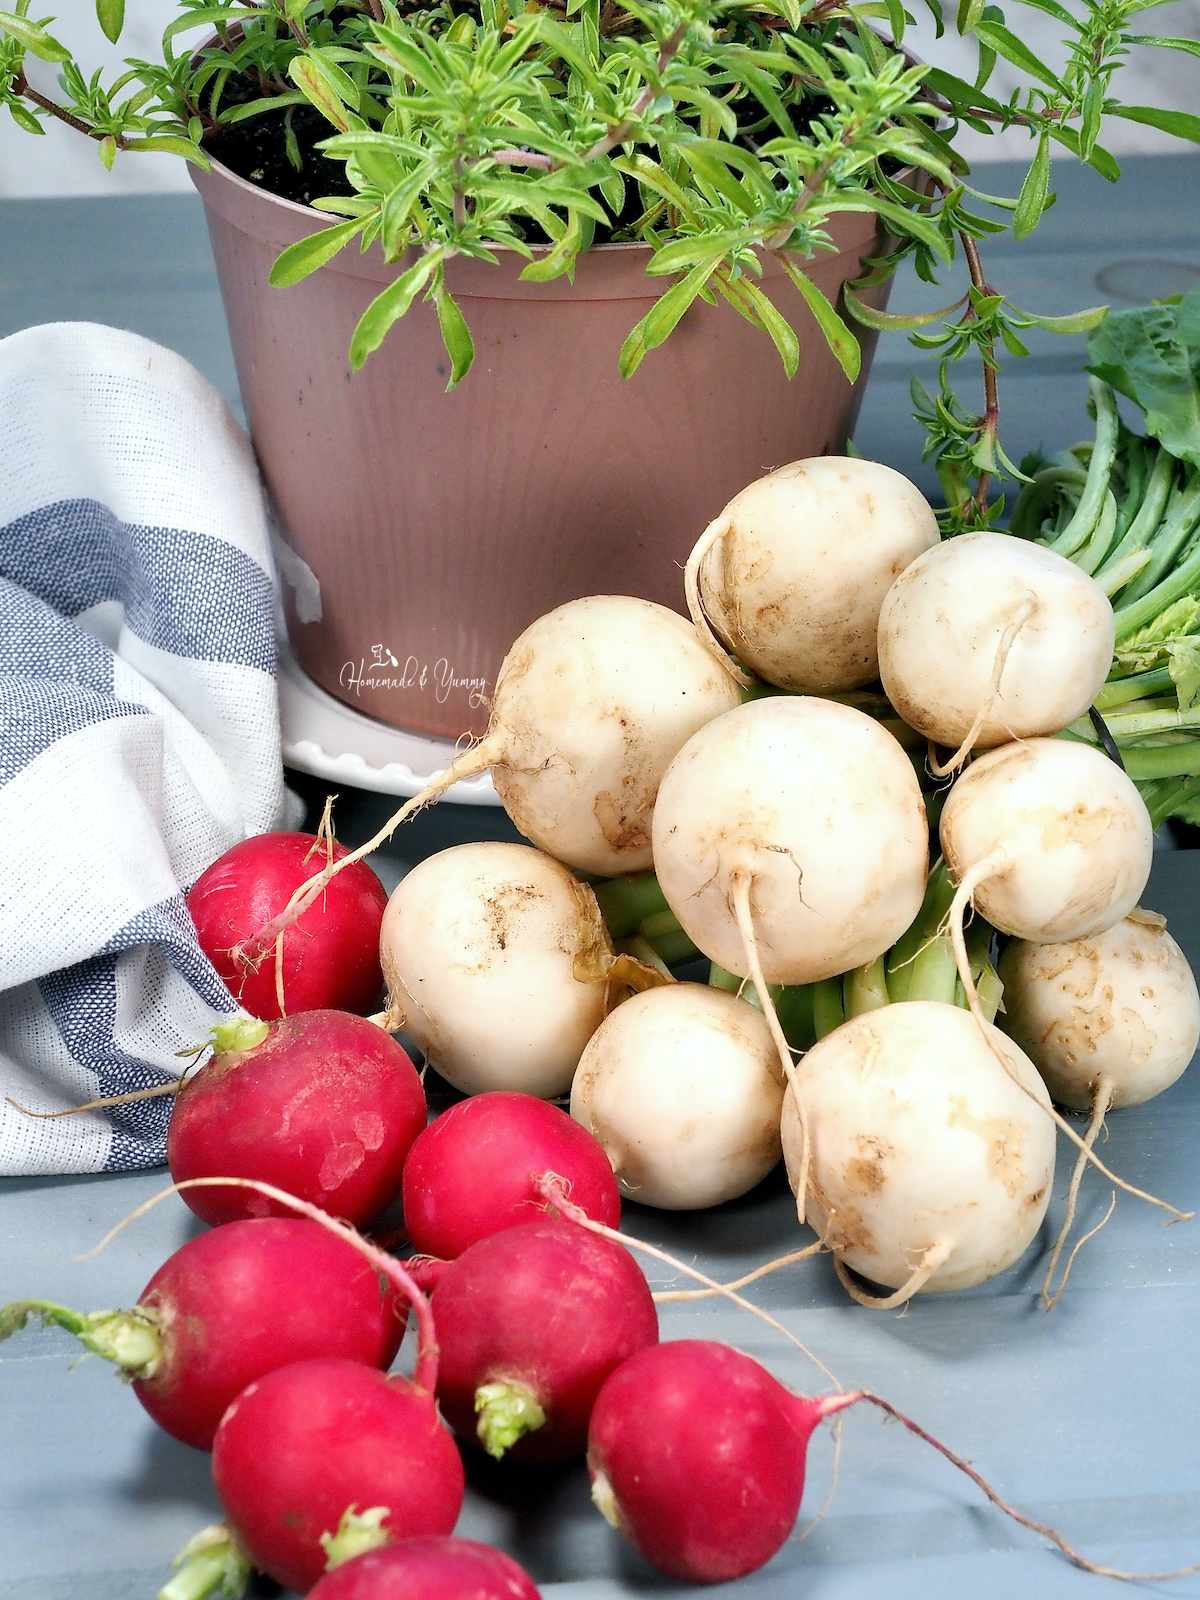 Bunches of radishes and turnips on a counter with a pot of herbs in the background.